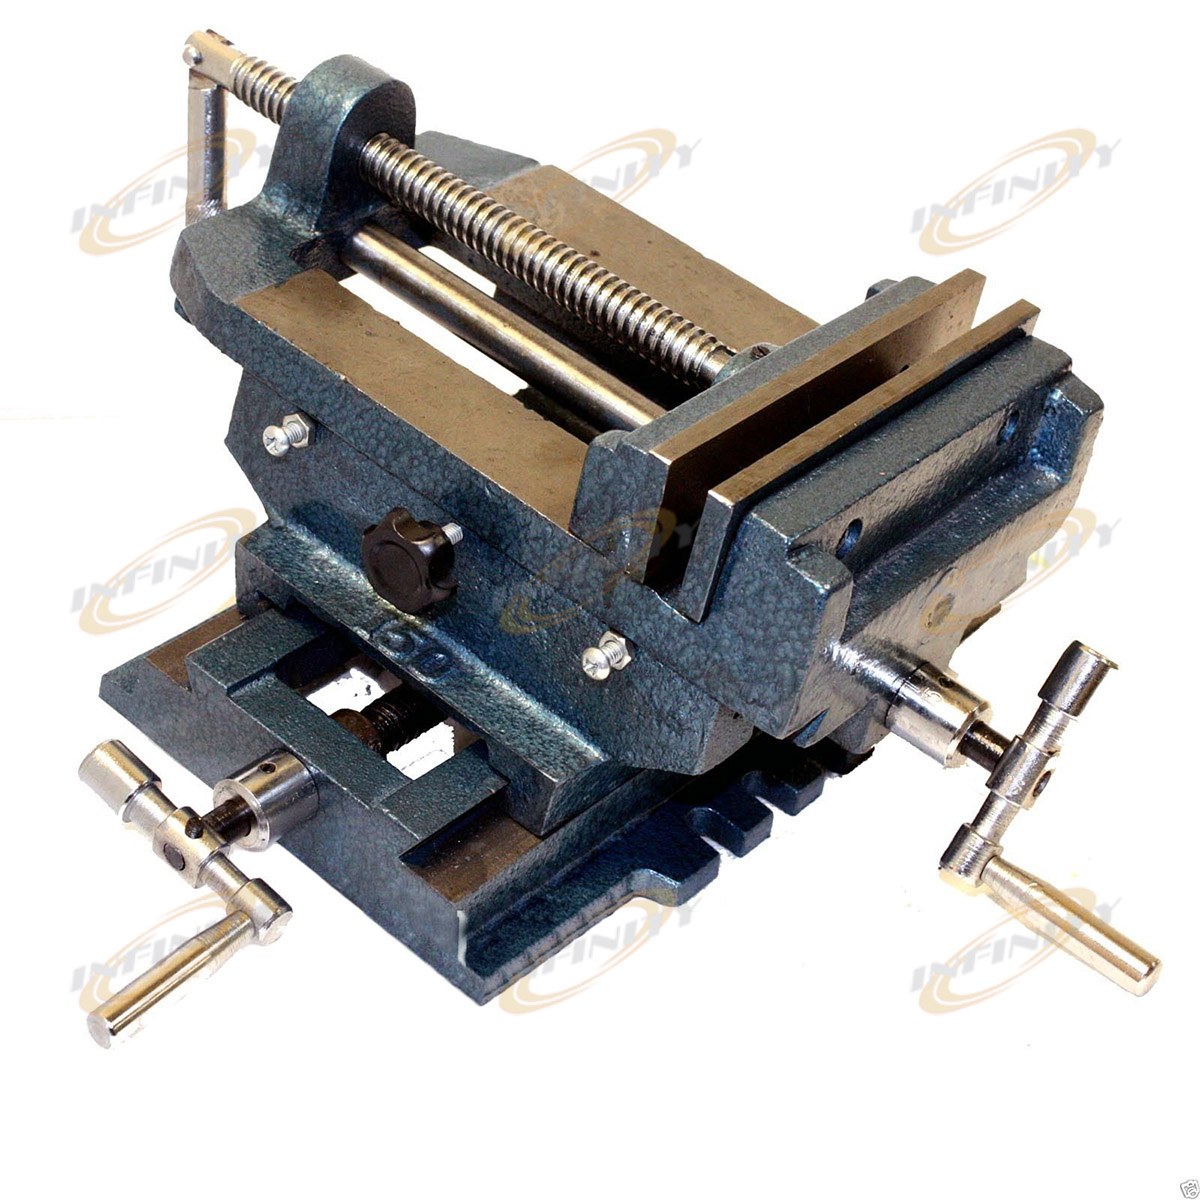 Drill Press Vise Cross Slide Metal Milling Clamp 2 Way HD Tools Adjustable Shims